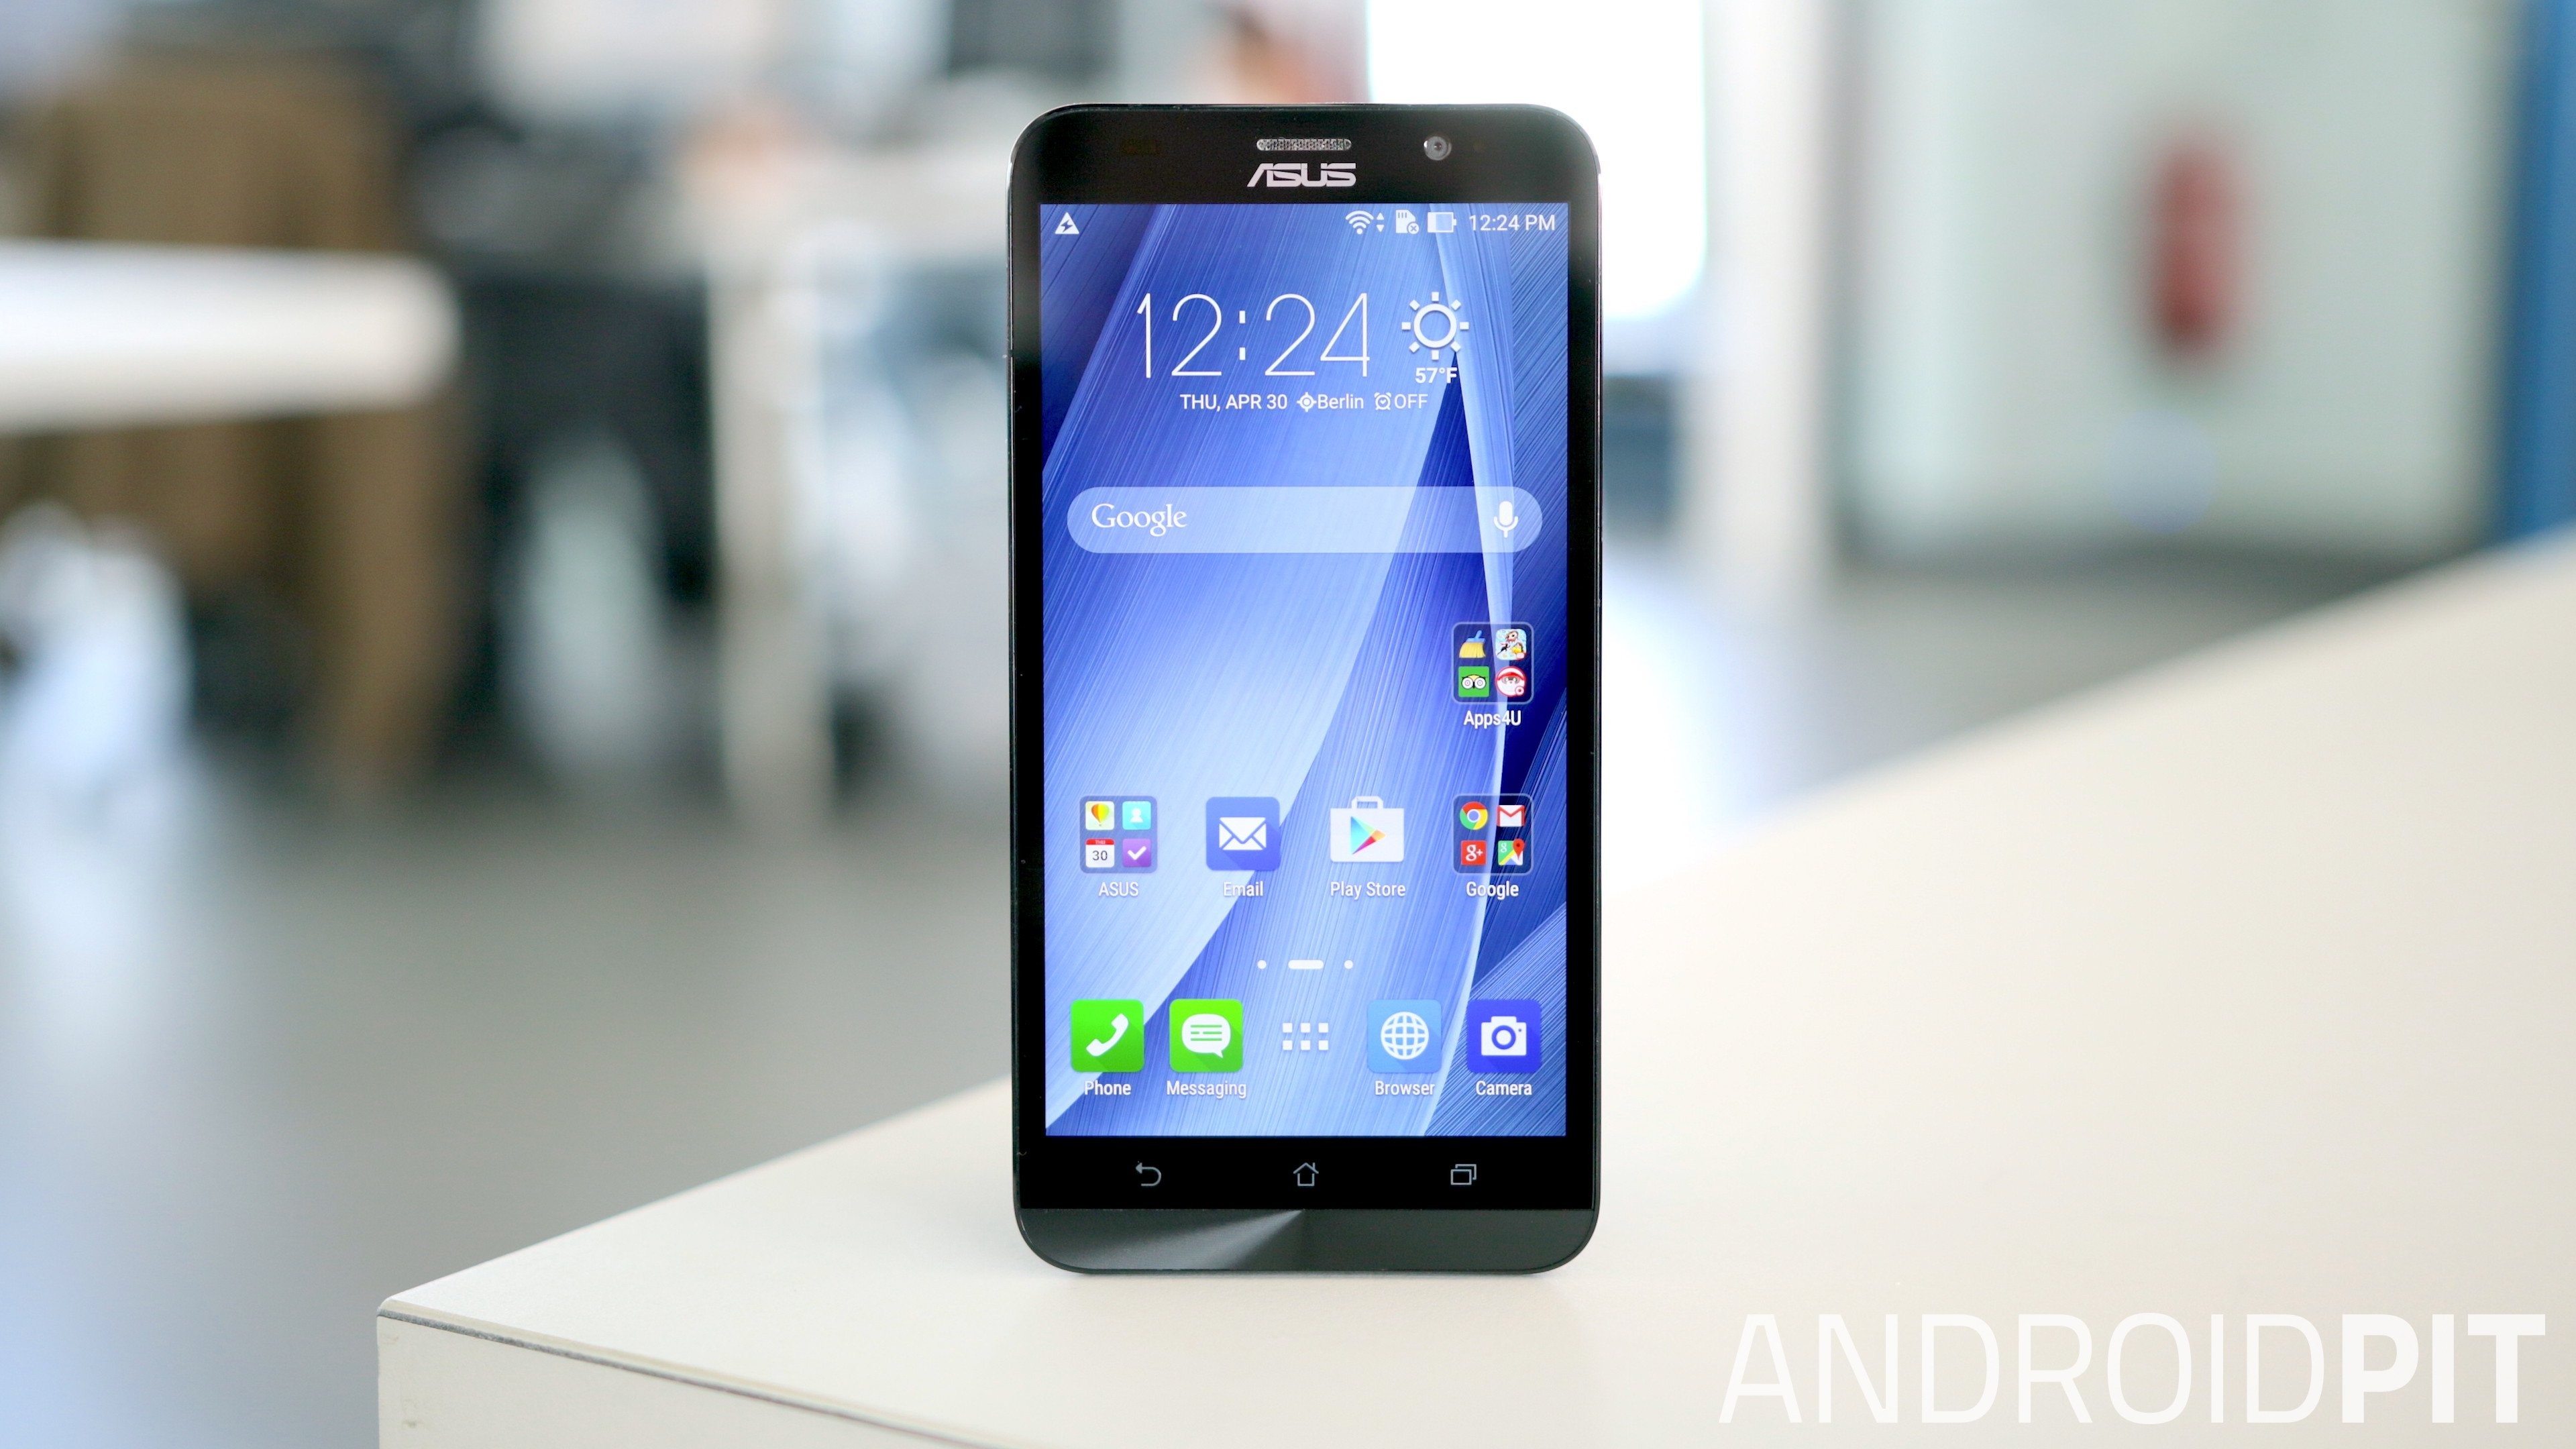 Asus Zenfone 2 review: RAMbunctious - Hardware reviews - AndroidPIT